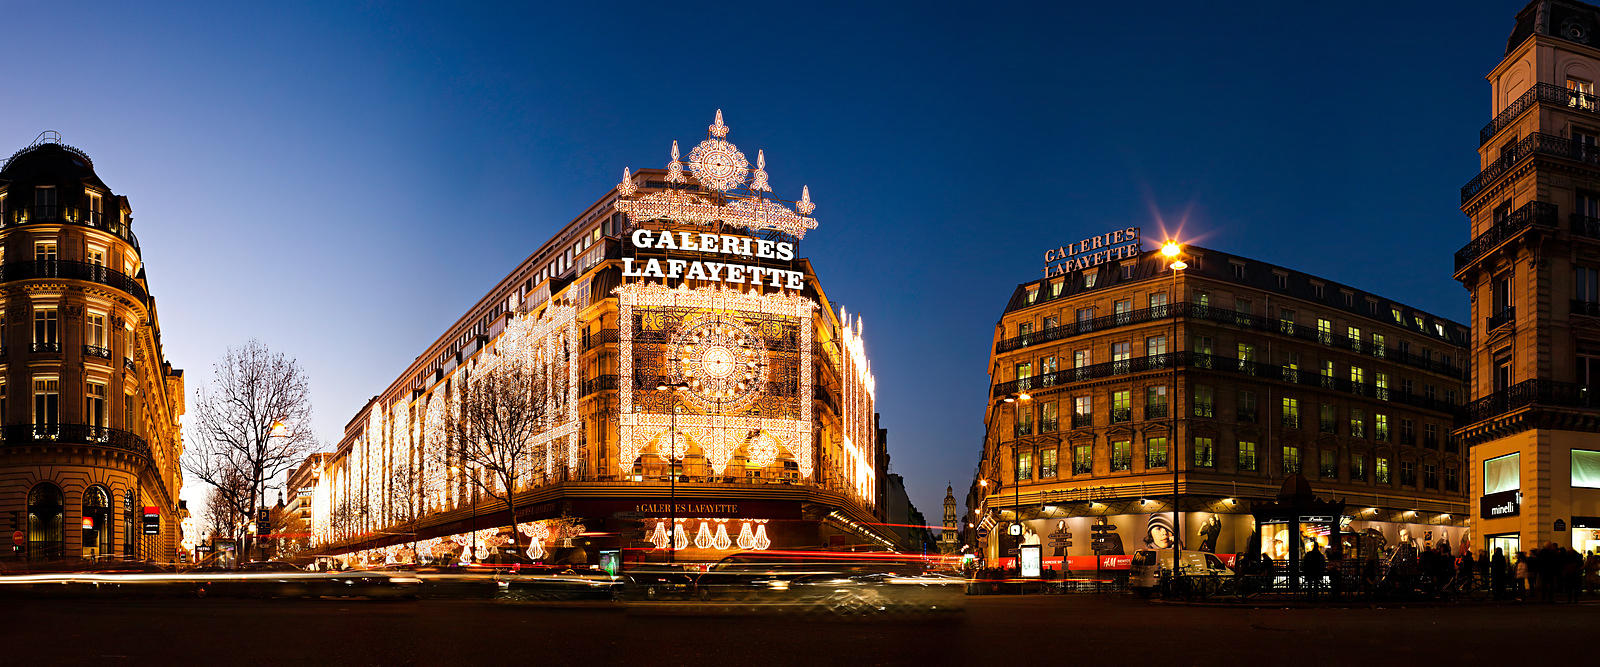 47/Quartier/grands-magasins-paris-noel_uxga.jpg